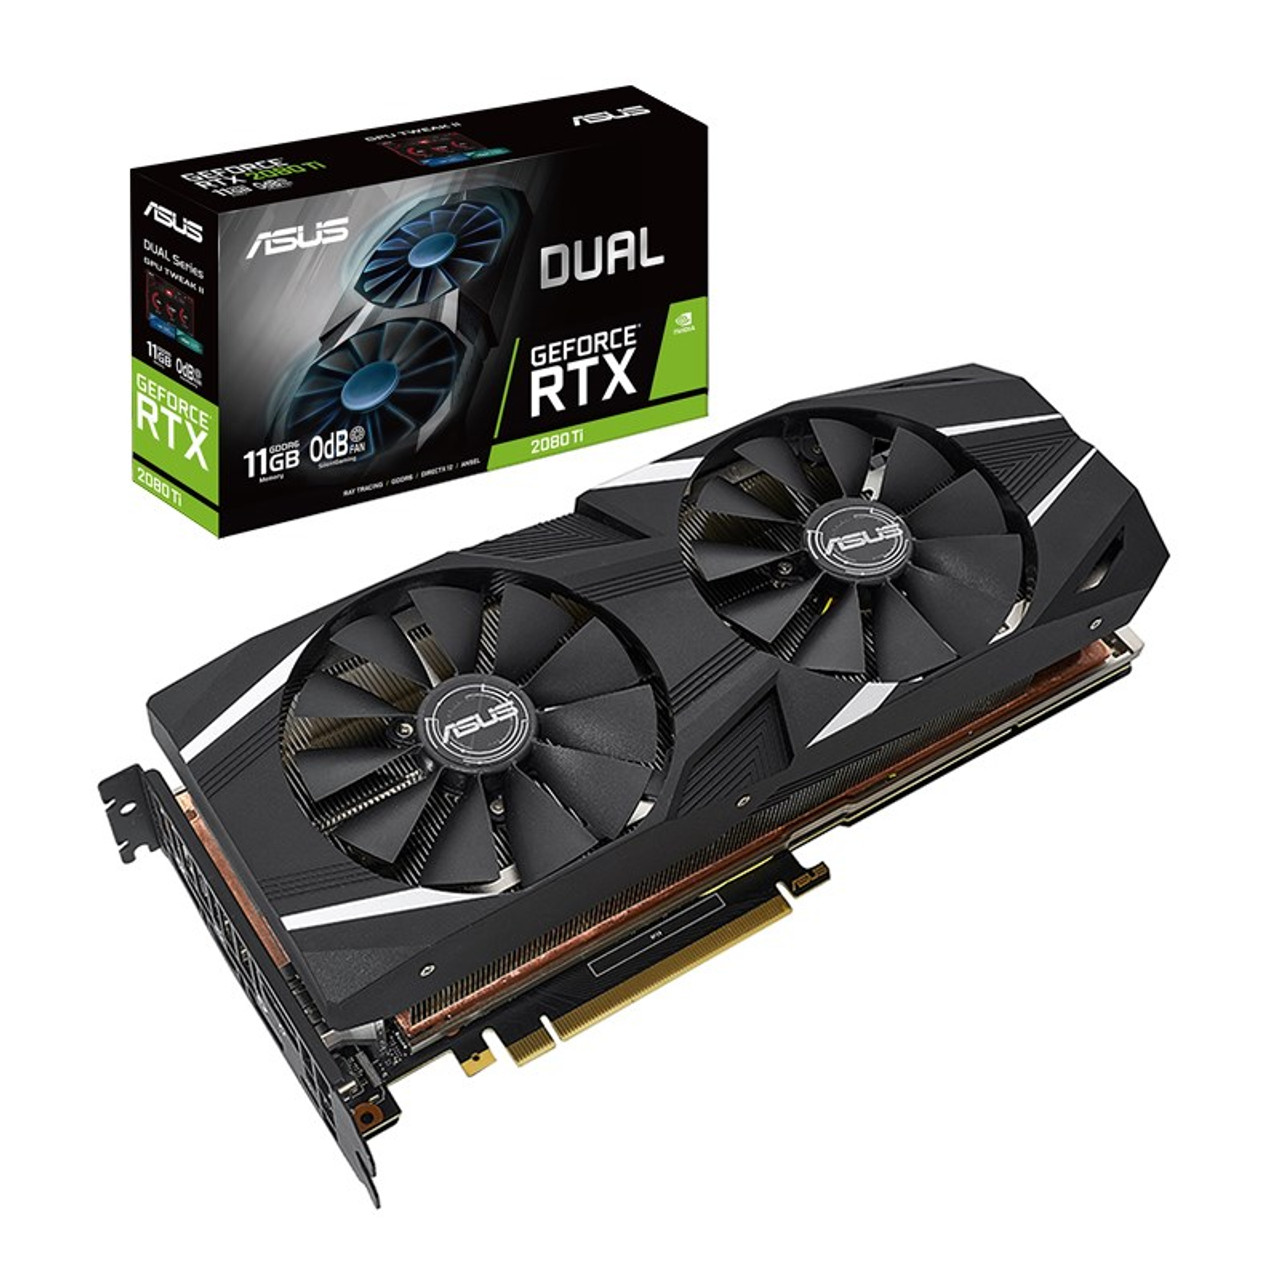 Image for Asus GeForce RTX 2080 Ti Dual 11GB Video Card CX Computer Superstore